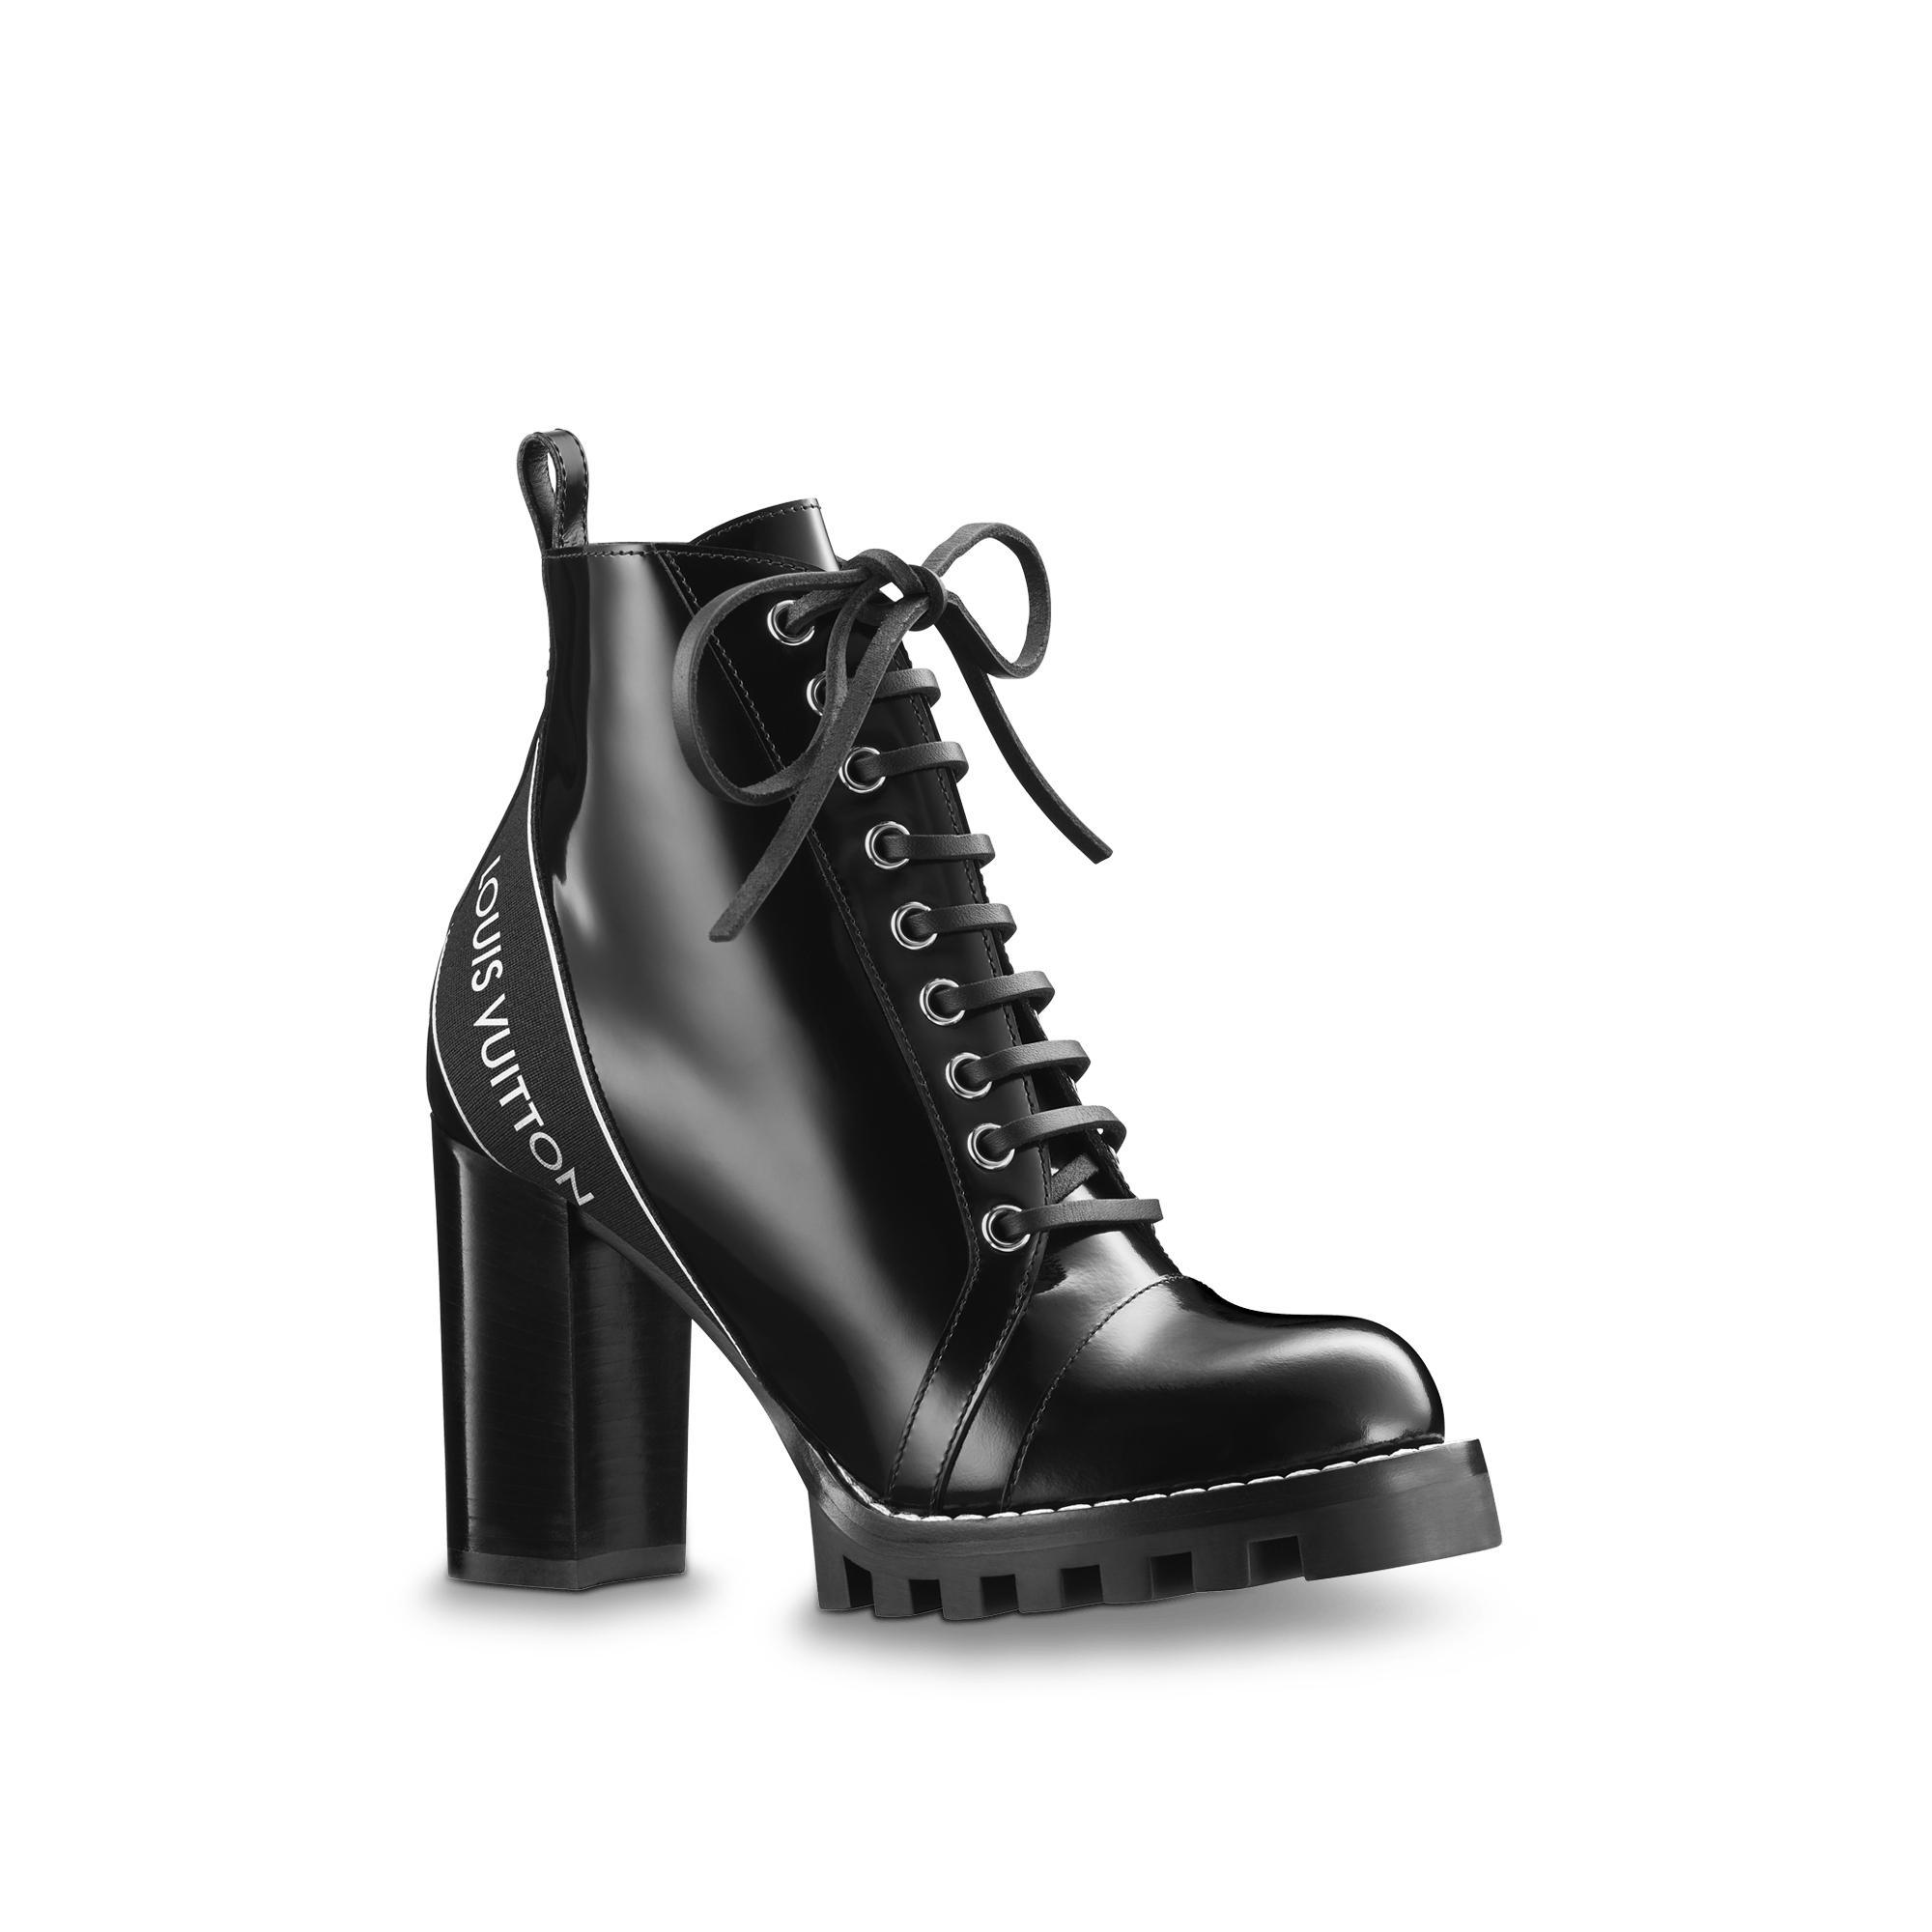 Star Trail Ankle Boot in Noir from LOUIS VUITTON